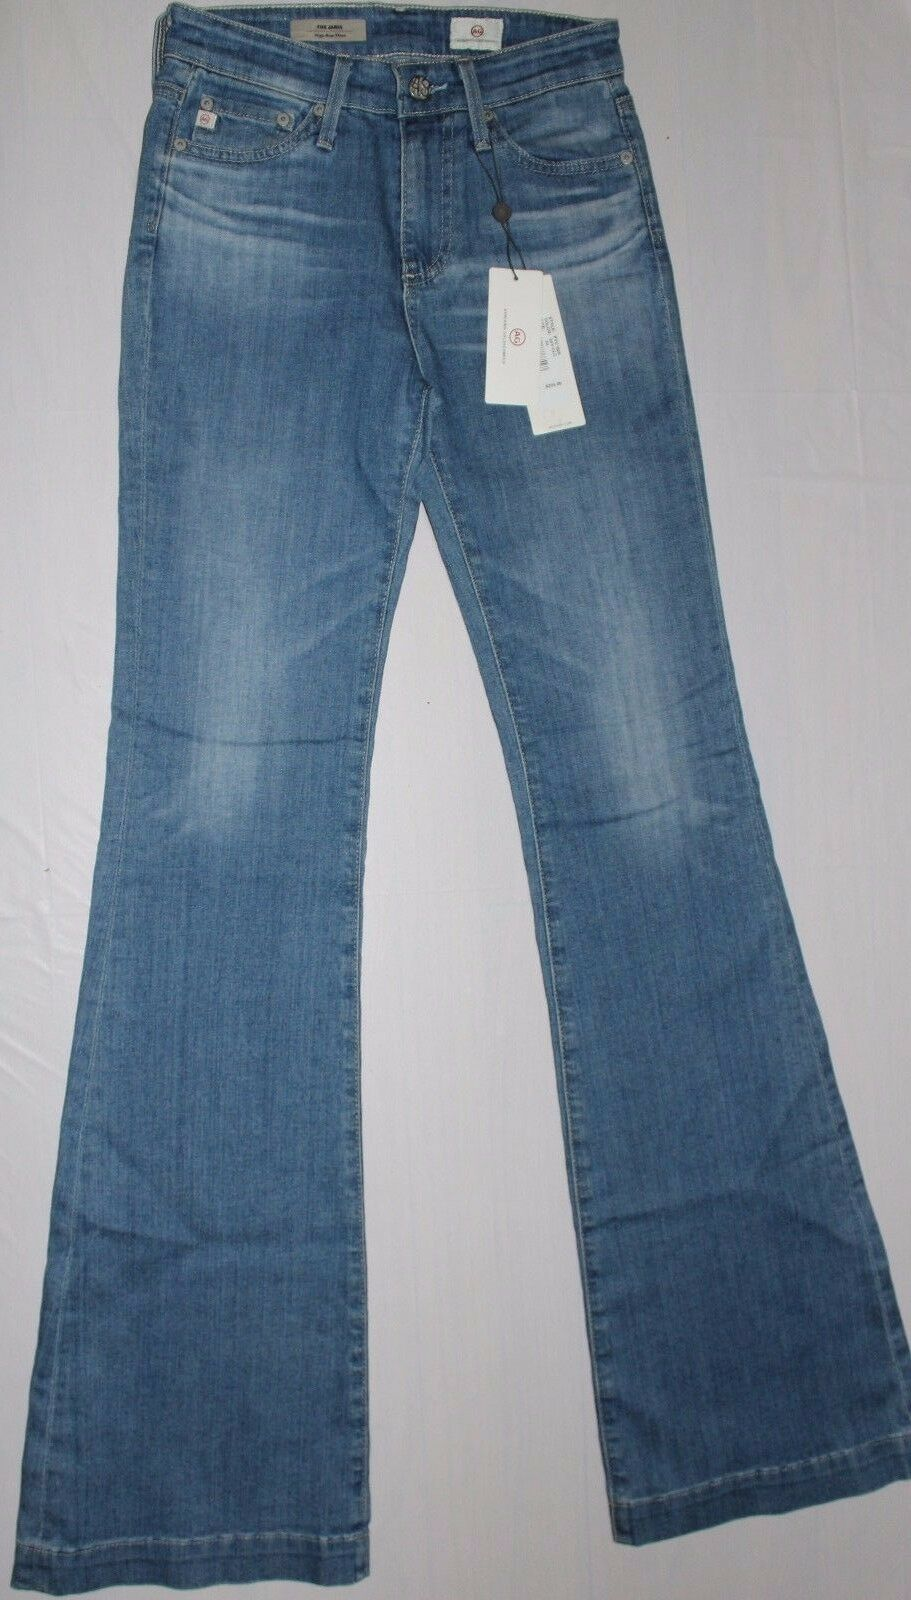 225 AG ADRIANO goldSCHMIED THE JANIS HIGH RISE FLARE JEANS US 24